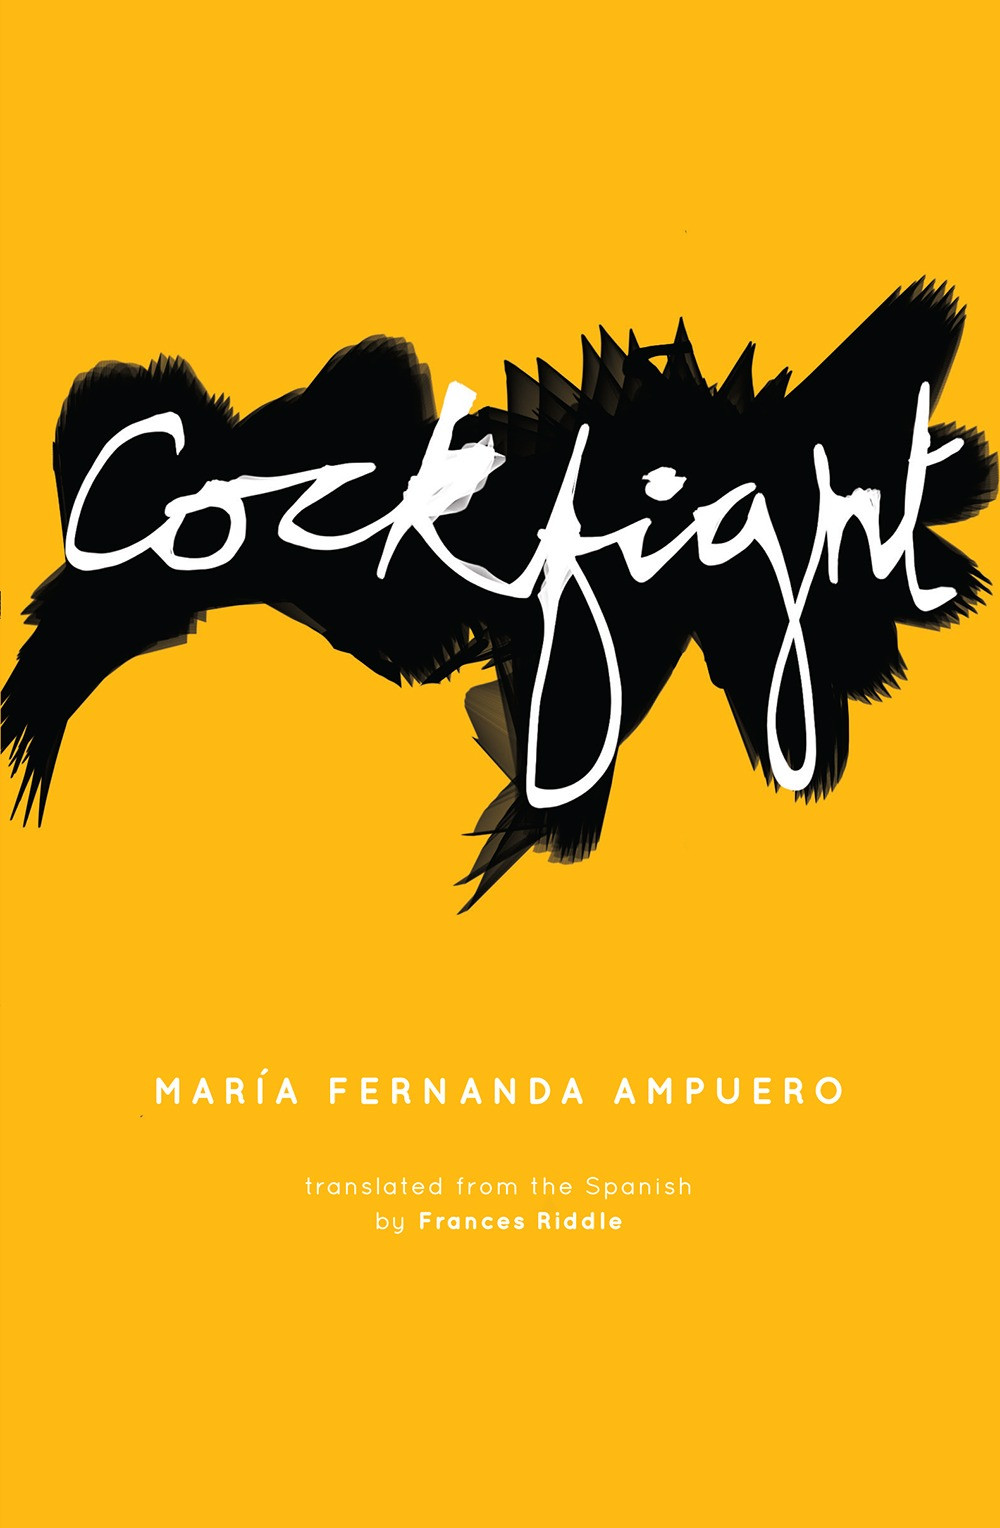 Orange and black book cover titled Cockfight María Fernanda Ampuero Translated from the Spanish by Frances Riddle thebookslut book reviews. Named one of the ten best fiction books of 2018 by the New York Times en Español, Cockfight is the debut work by Ecuadorian writer and journalist María Fernanda Ampuero. In lucid and compelling prose, Ampuero sheds light on the hidden aspects of home: the grotesque realities of family, coming of age, religion, and class struggle. A family's maids witness a horrible cycle of abuse, a girl is auctioned off by a gang of criminals, and two sisters find themselves at the mercy of their spiteful brother. With violence masquerading as love, characters spend their lives trapped reenacting their past traumas. Heralding a brutal and singular new voice, Cockfight explores the power of the home to both create and destroy those within it. María Fernanda Ampuero is a writer and journalist, born in Guayaquil, Ecuador, in 1976. She has published articles in newspapers and magazines around the world, as well as two nonfiction books: Lo que aprendí en la peluquería y Permiso de residencia. Cockfight is her first short story collection, and her first book to be translated into English. Frances Riddle is a writer and translator based in Buenos Aires, Argentina. Her recent book-length translations include Not One Less by María Pía López (forthcoming, Polity Press); Plebeian Prose by Néstor Perlongher (Polity Press 2019); The German Room by Carla Maliandi (Charco Press 2018). Her short story translations, essays, and reviews have been published in the White Review, Electric Literature, the Short Story Project, and Words Without Borders, among others.